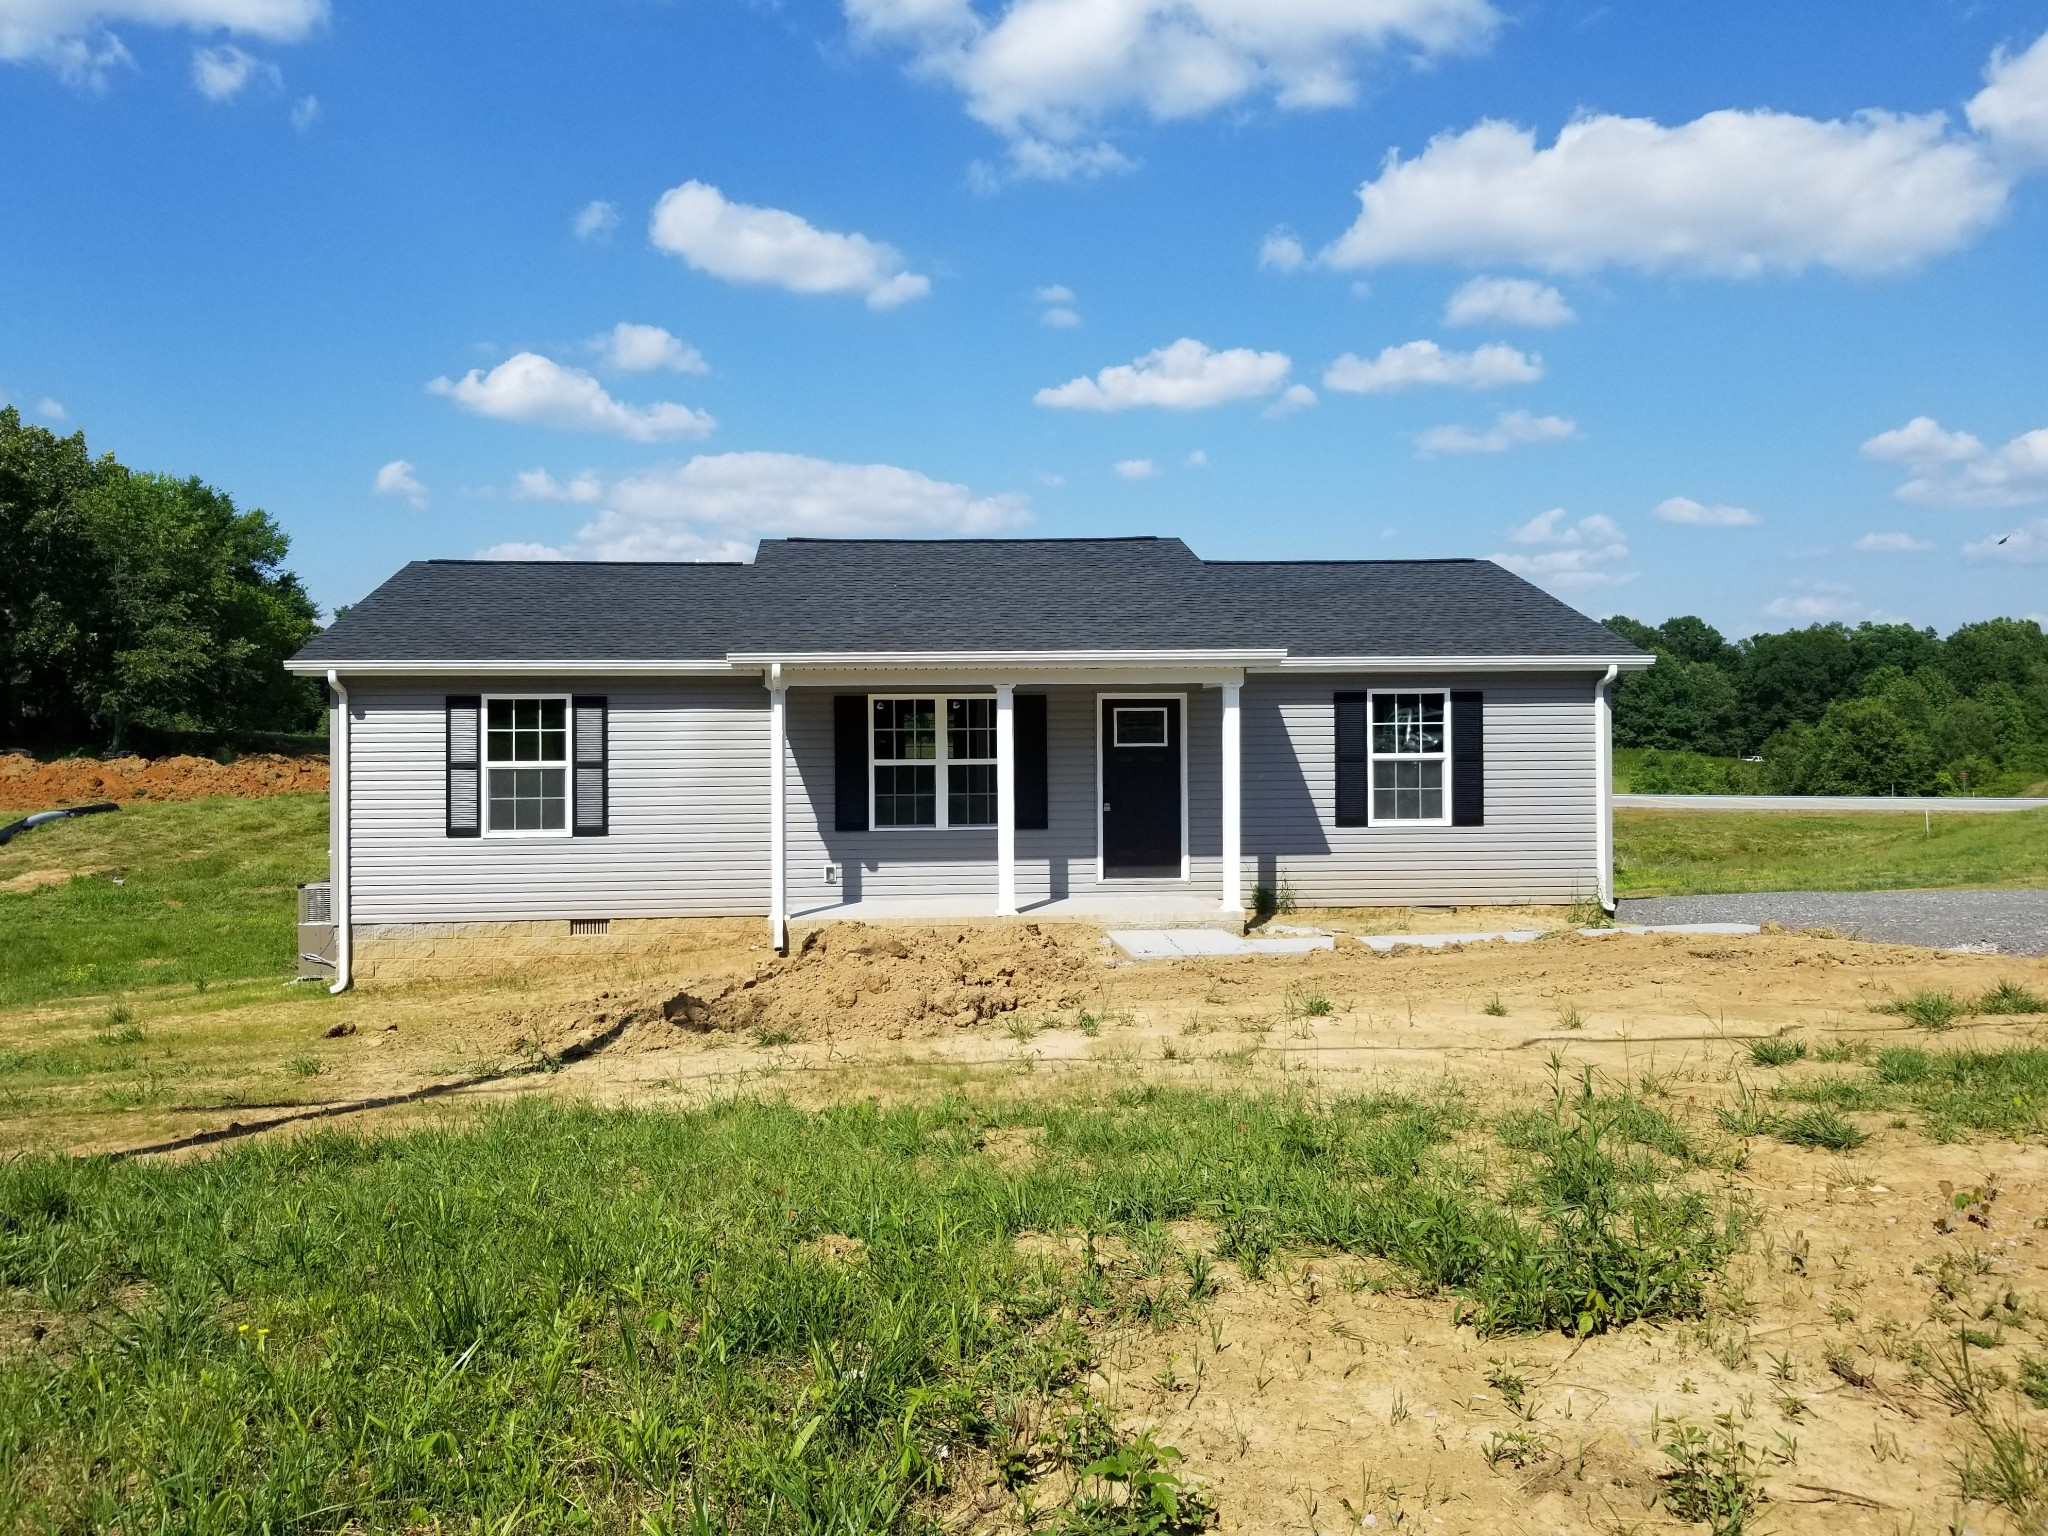 643 Old Mcminnville Hwy, Woodbury, TN 37190 - Woodbury, TN real estate listing